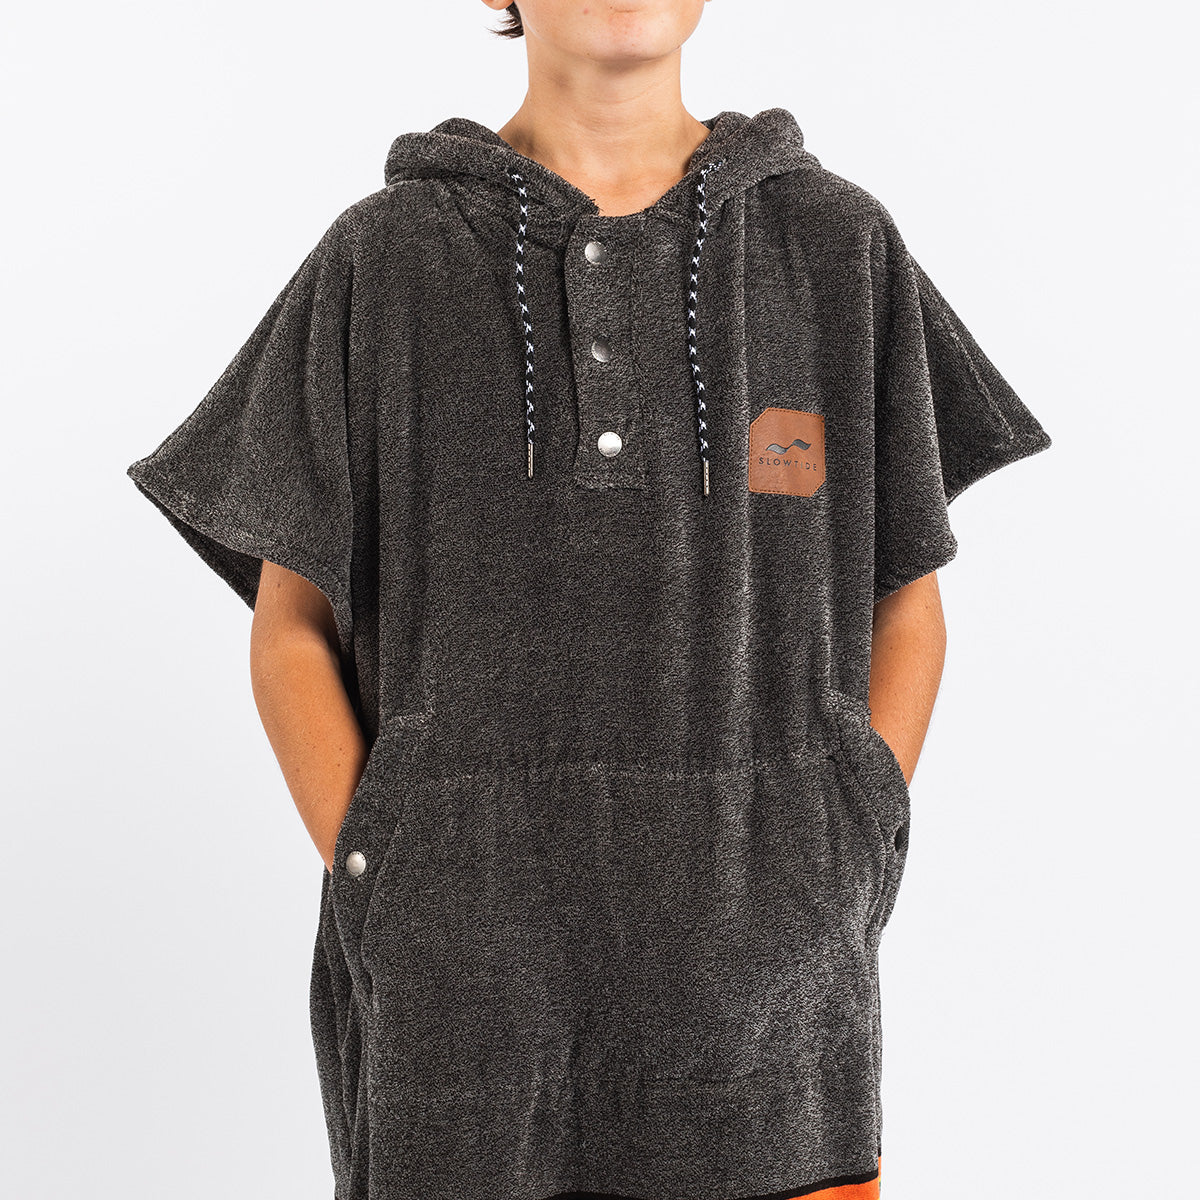 Ranger Changing Poncho - Small - Slowtide